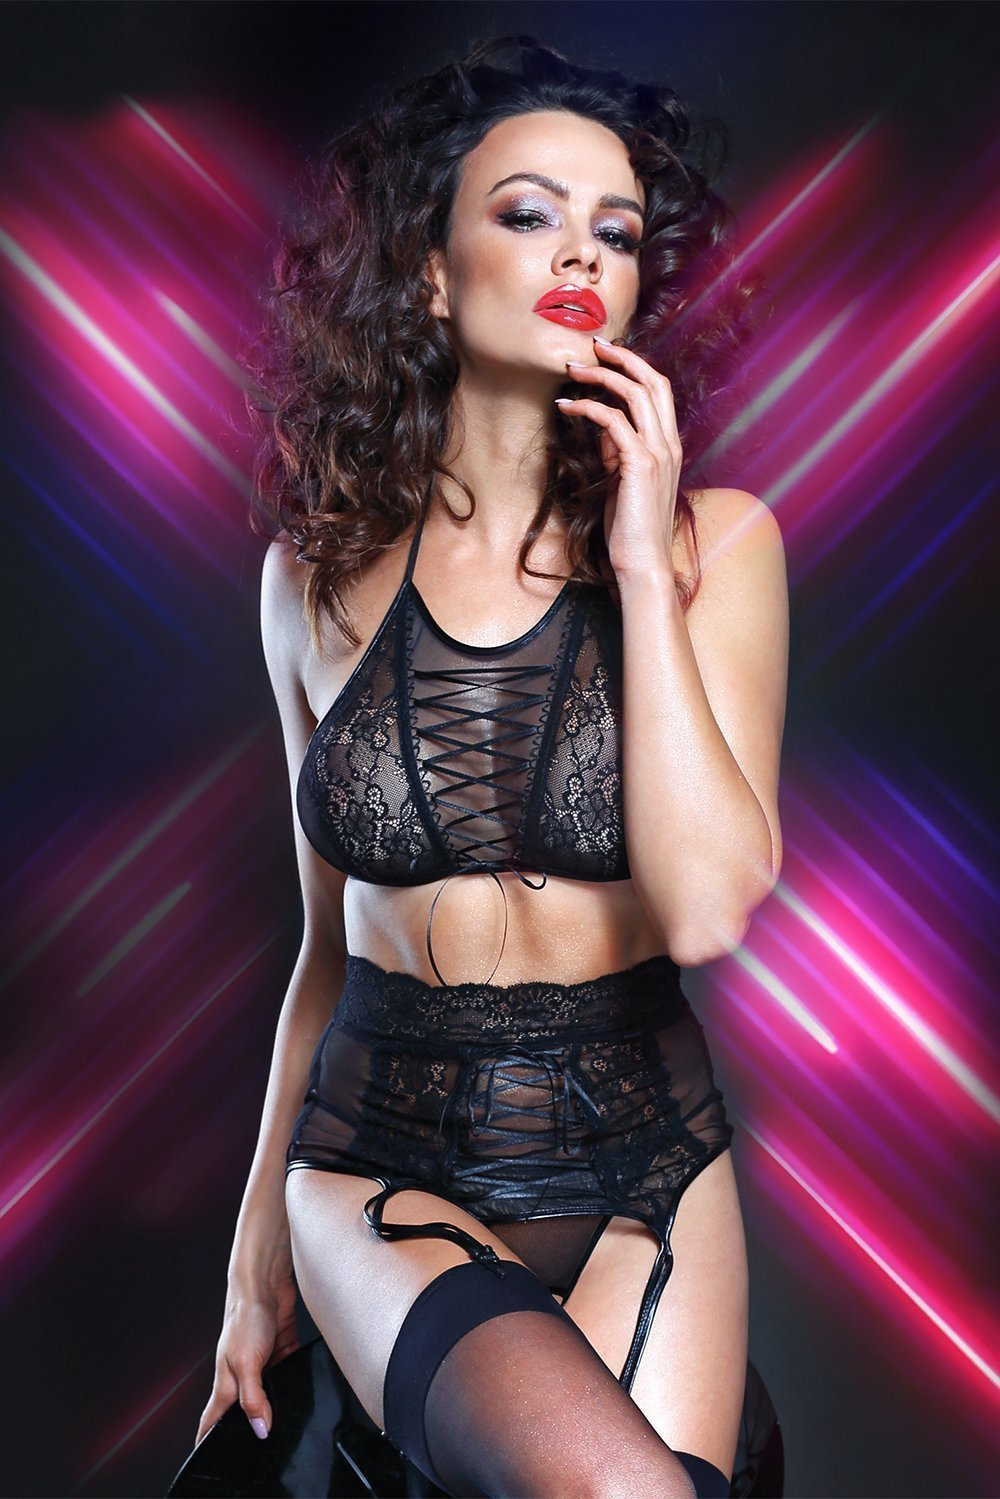 demoniq Demoniq Lingerie Set UK 8 / Black Vanda Lingerie Set